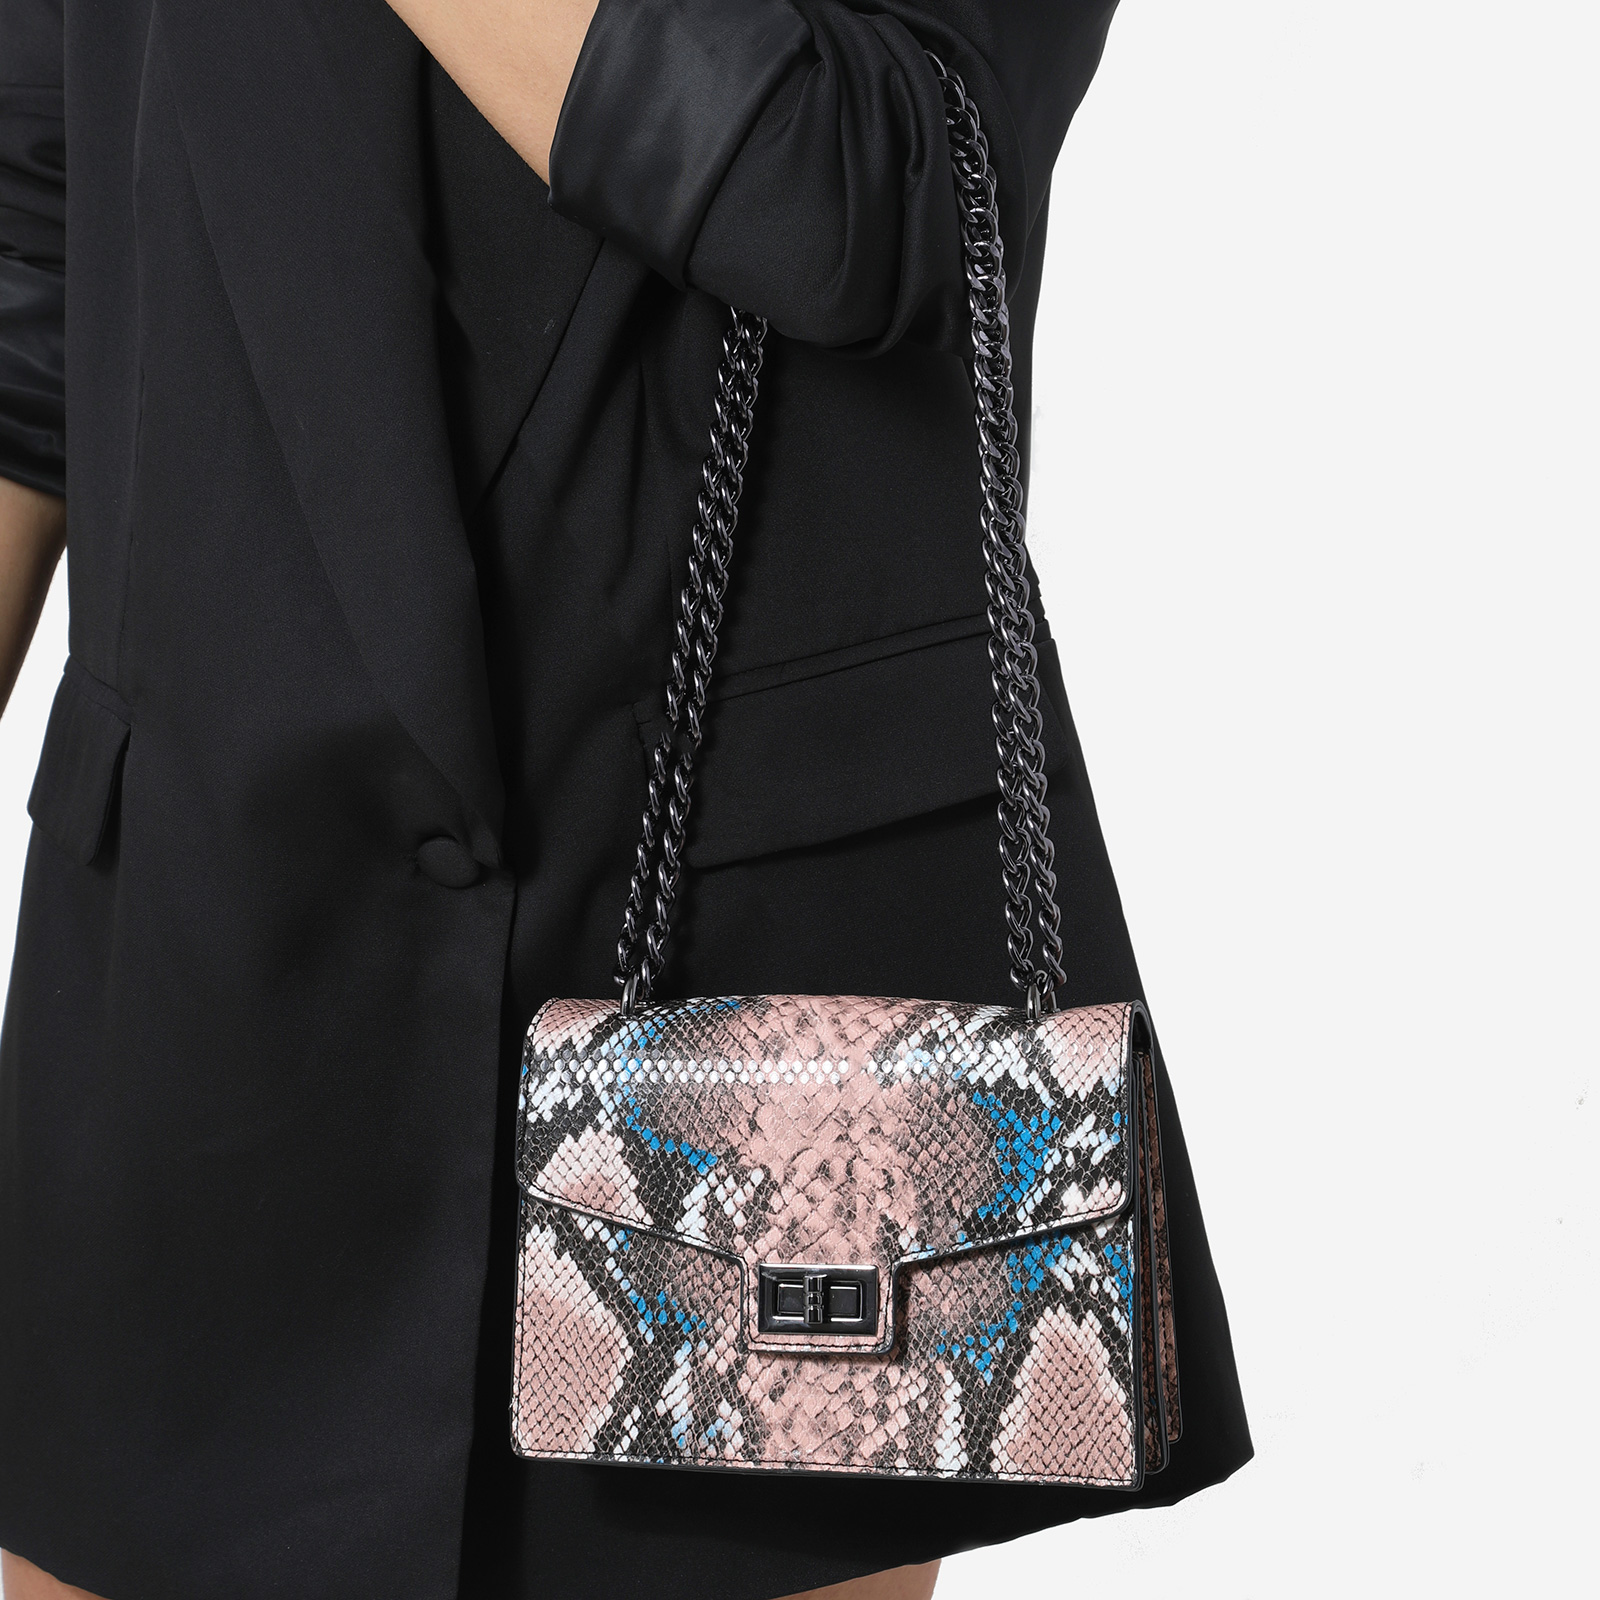 Chain Detail Cross Body Bag In Pink and Blue Snake Print Faux Leather